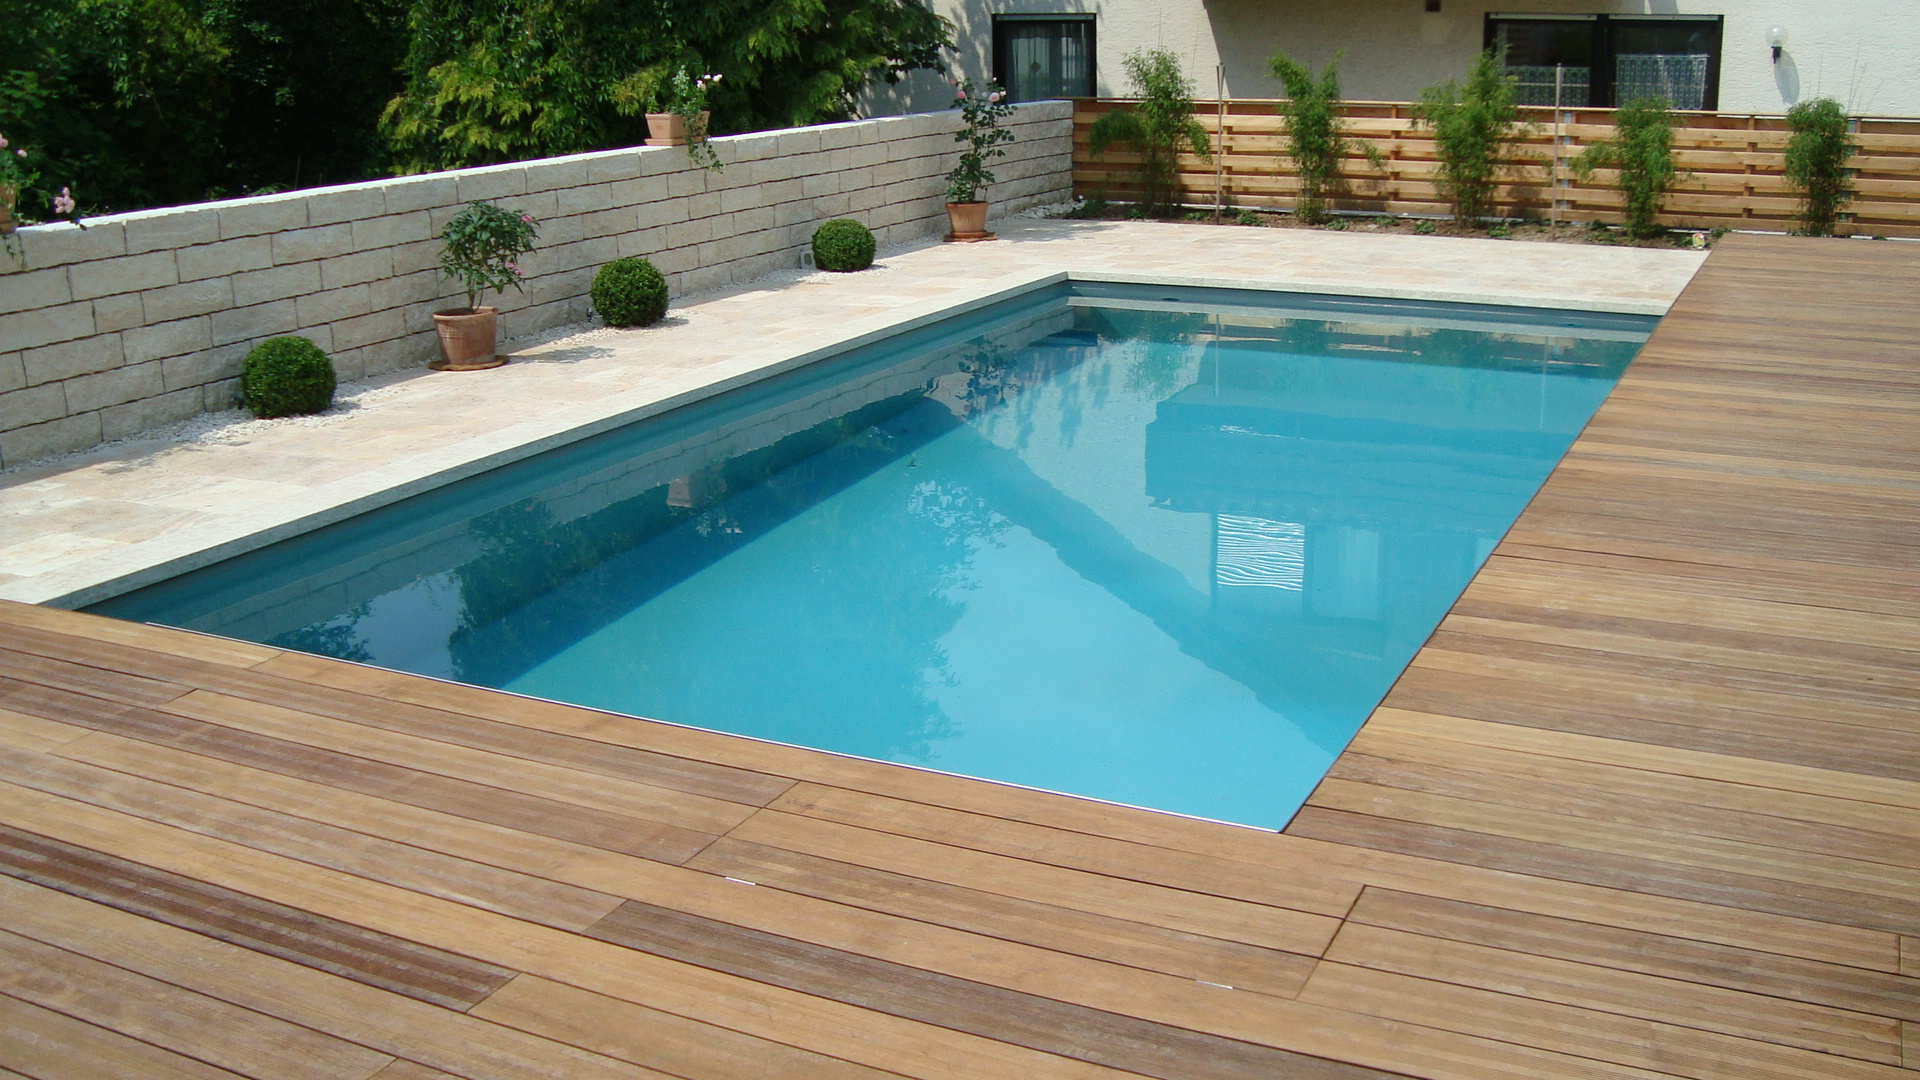 pool im garten gestalten mit holz. Black Bedroom Furniture Sets. Home Design Ideas